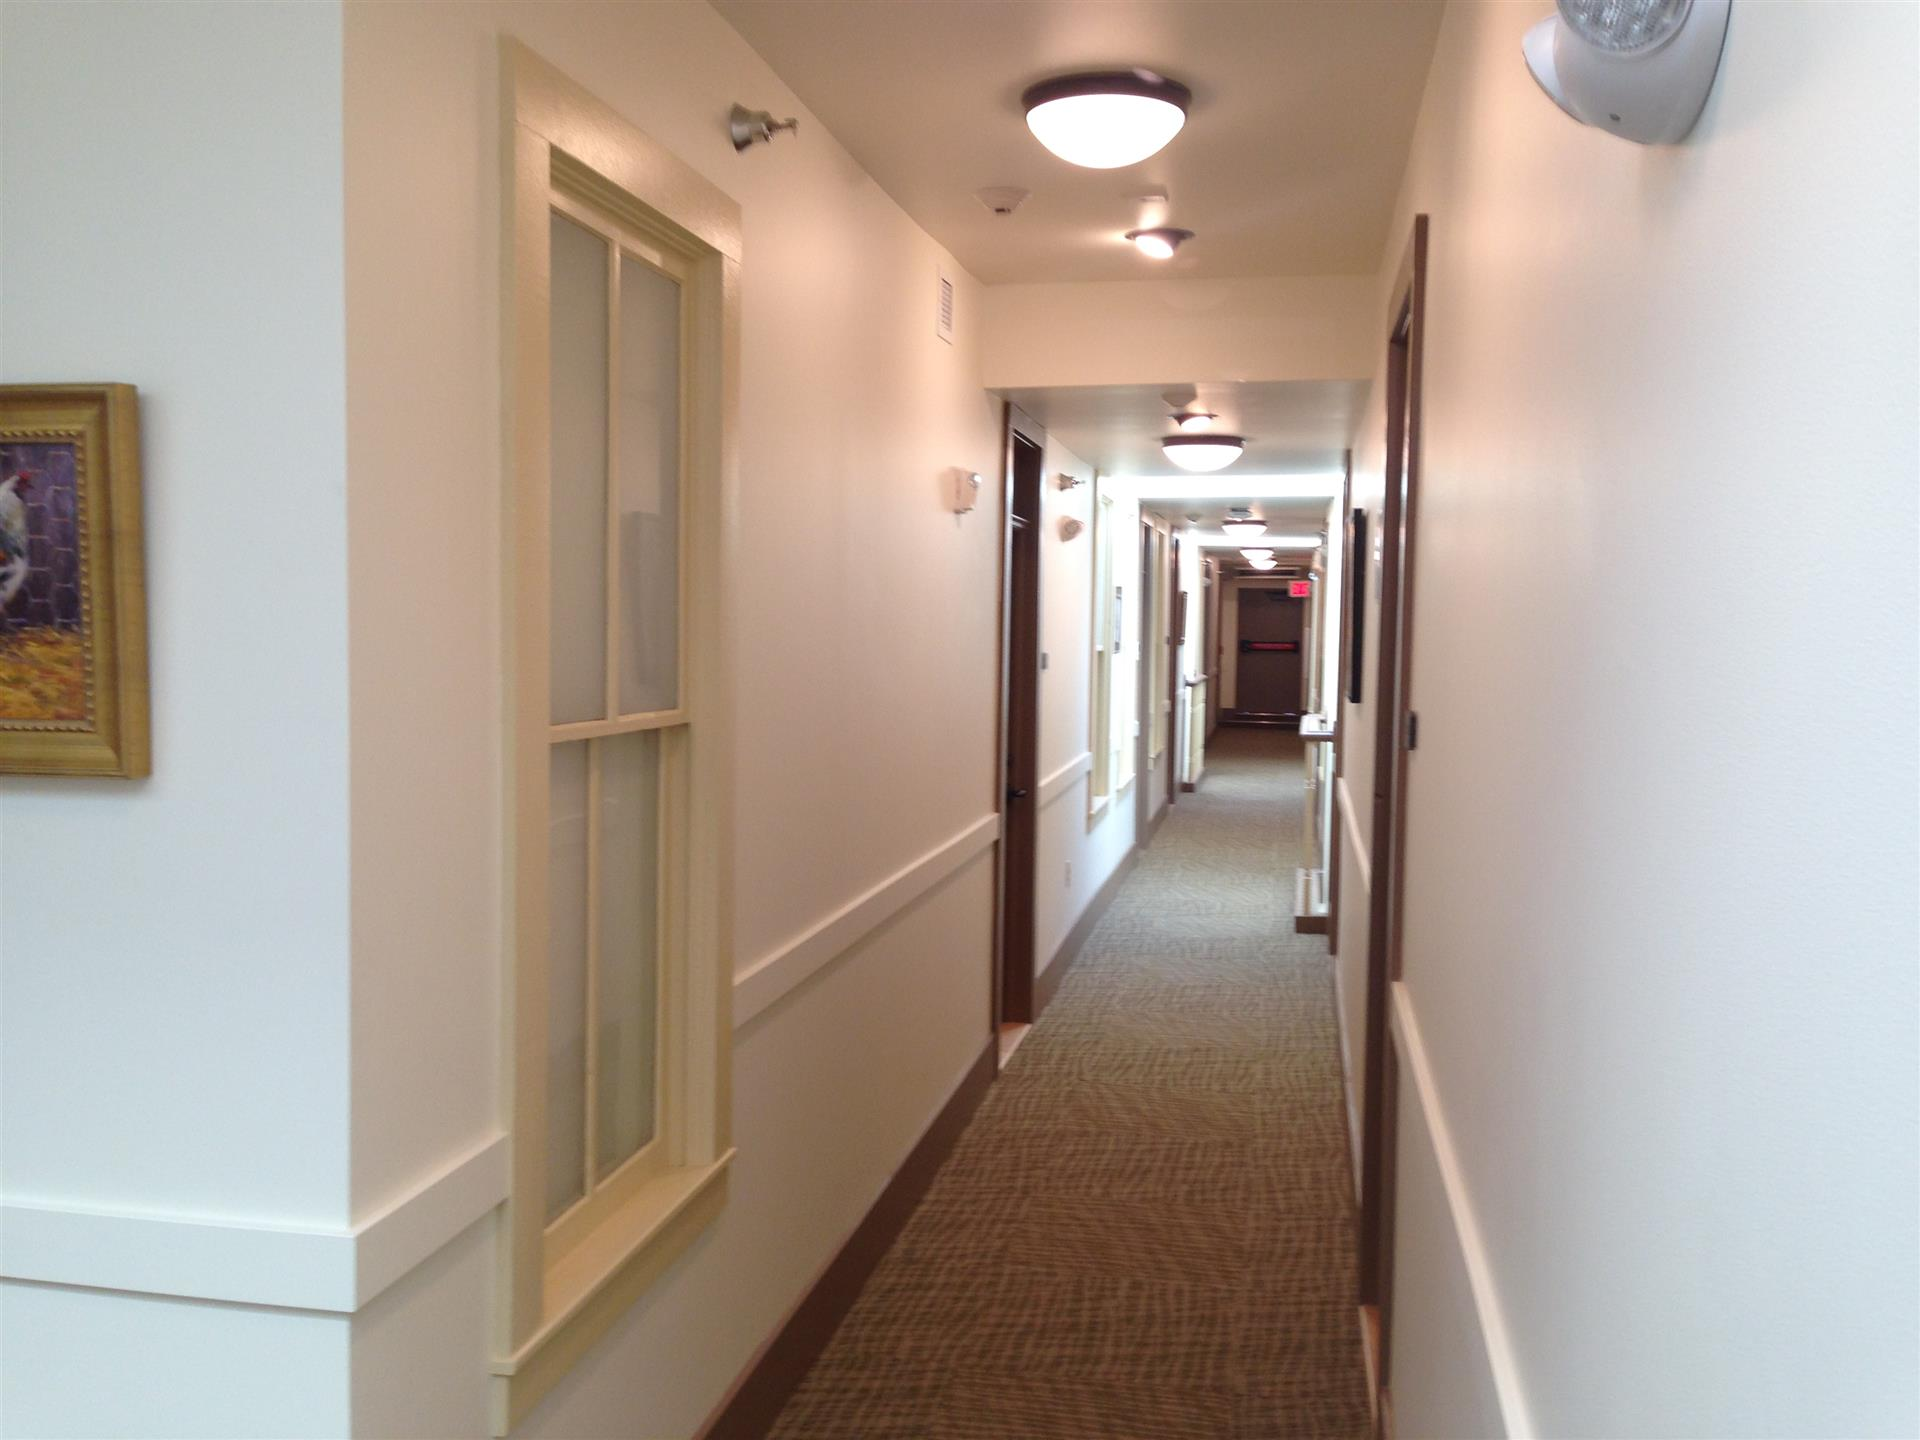 long hallway showcasing the room doors